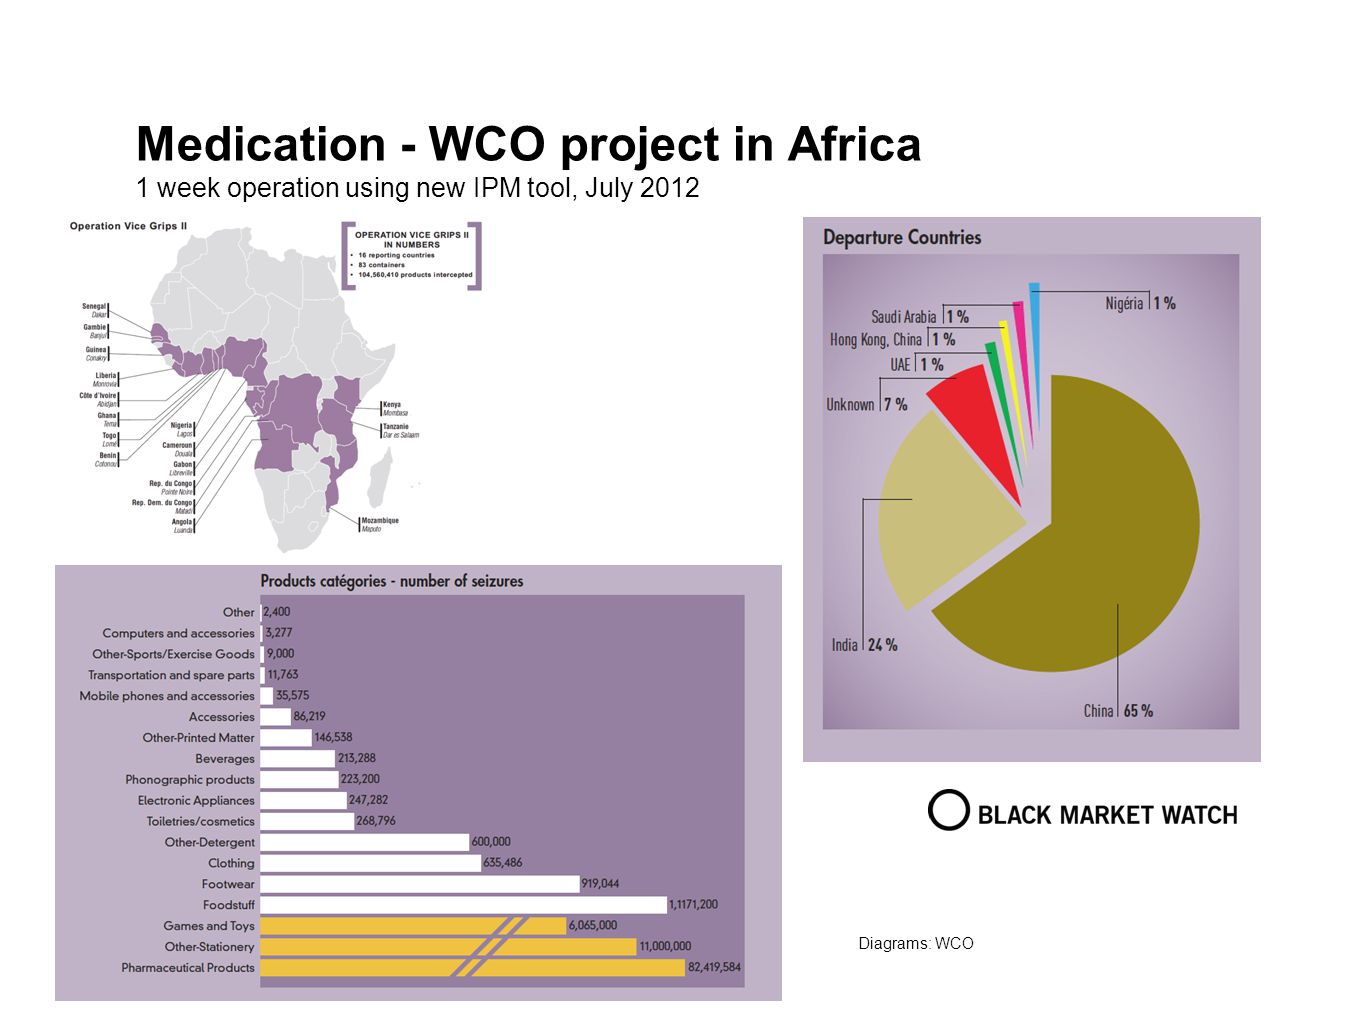 Medication - WCO project in Africa 1 week operation using new IPM tool, July 2012 Diagrams: WCO